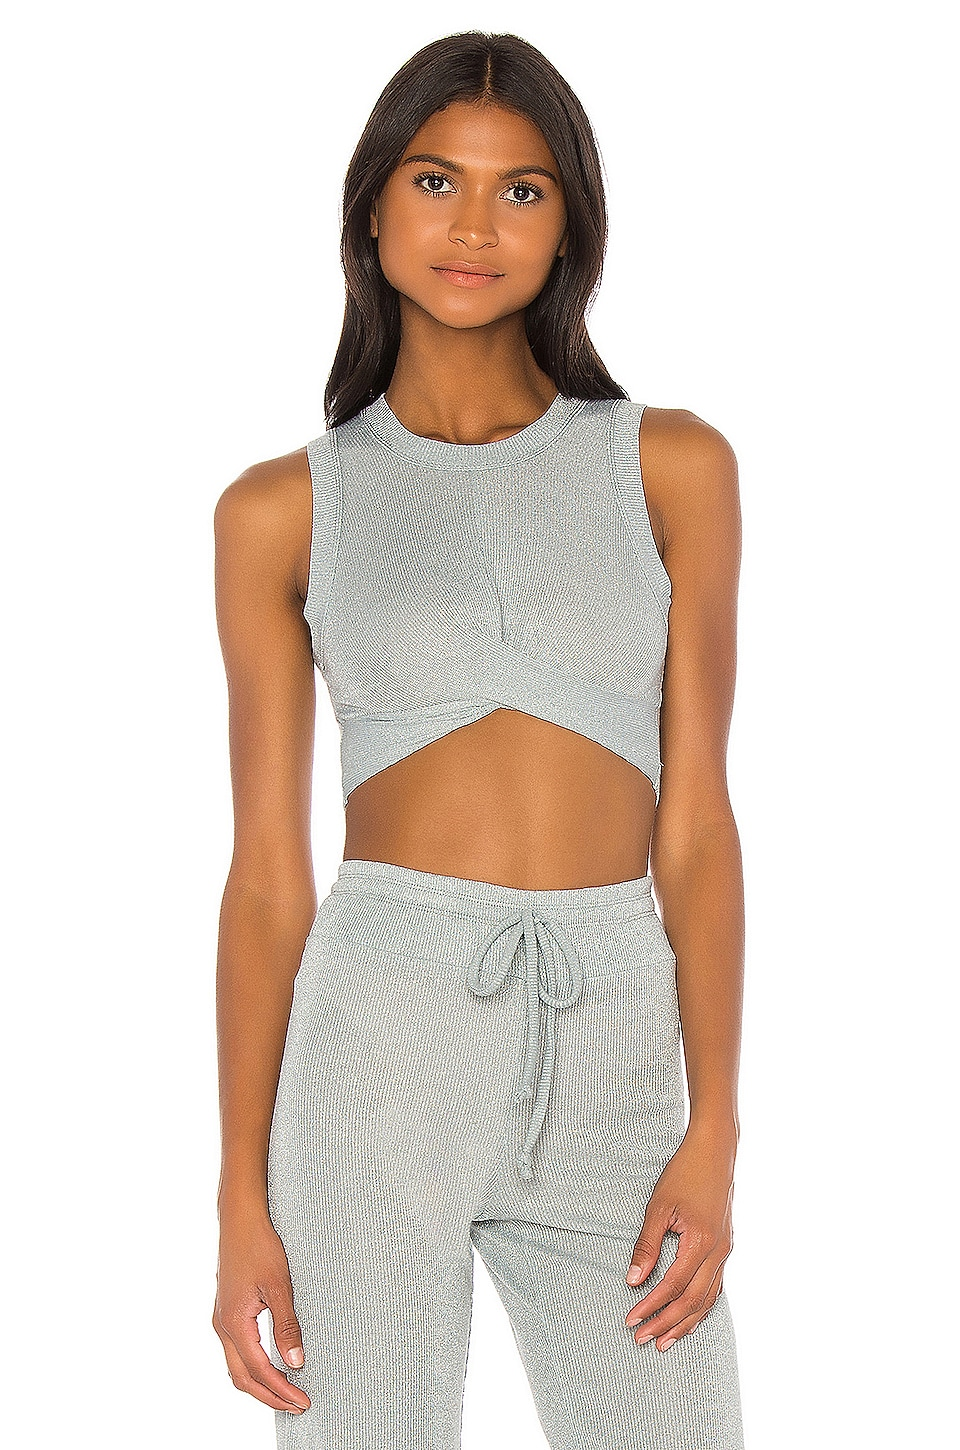 BEACH RIOT Riot Crop Top in Silver